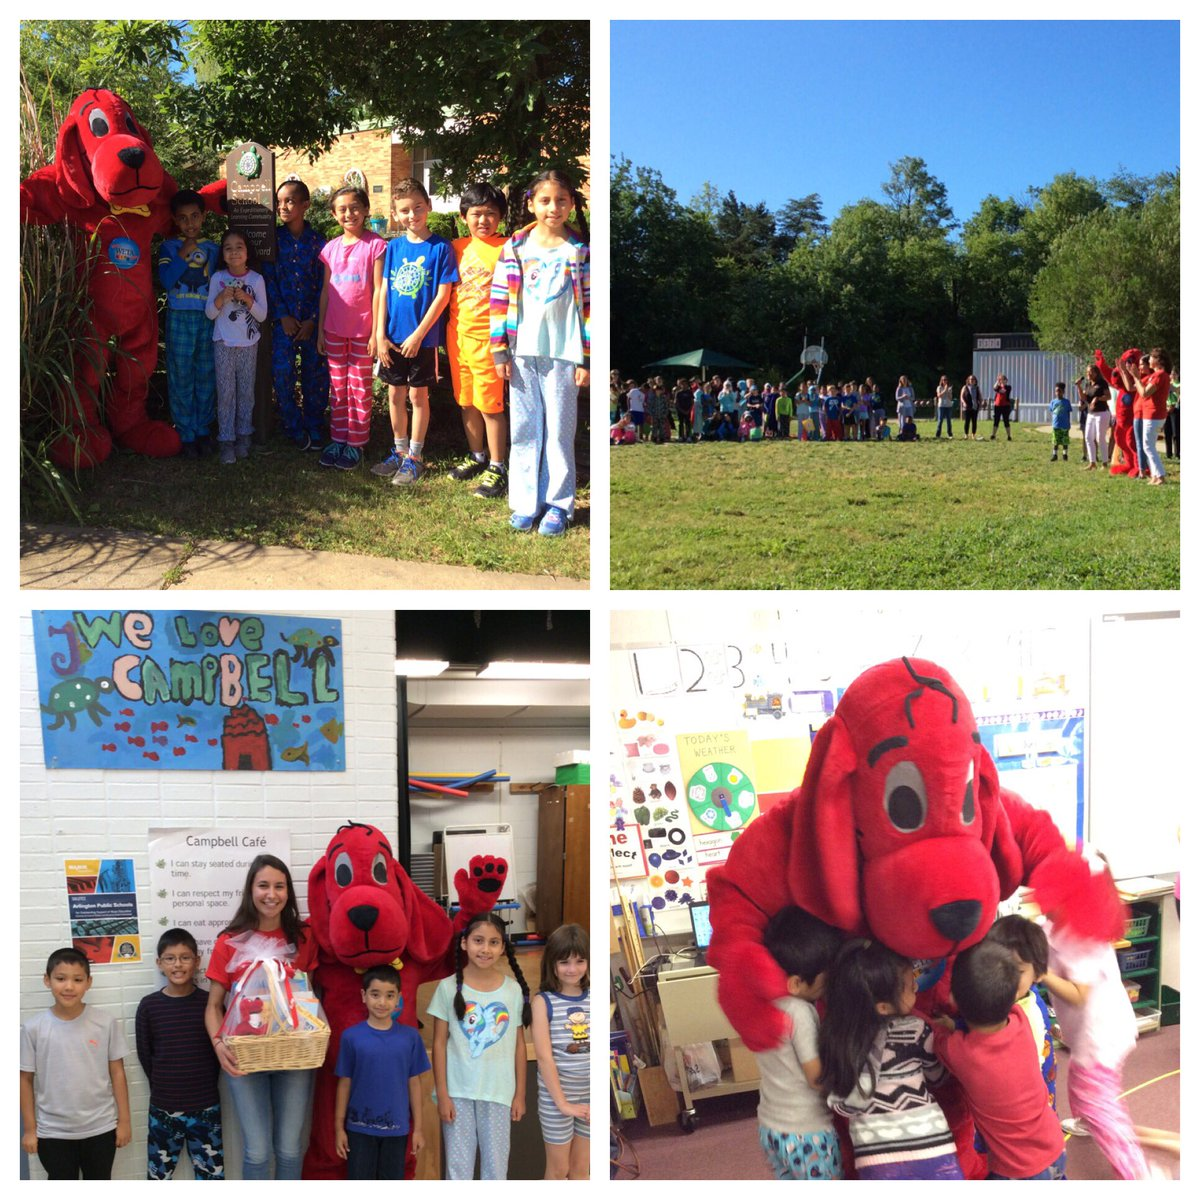 Clifford came to congratulate <a target='_blank' href='http://twitter.com/CampbellAPS'>@CampbellAPS</a> for the most entries in the WETA writing contest! <a target='_blank' href='http://twitter.com/wetatvfm'>@wetatvfm</a> <a target='_blank' href='http://search.twitter.com/search?q=YoungWriters'><a target='_blank' href='https://twitter.com/hashtag/YoungWriters?src=hash'>#YoungWriters</a></a>'Contest <a target='_blank' href='http://search.twitter.com/search?q=mostever'><a target='_blank' href='https://twitter.com/hashtag/mostever?src=hash'>#mostever</a></a> <a target='_blank' href='https://t.co/2UTcx00Bnx'>https://t.co/2UTcx00Bnx</a>